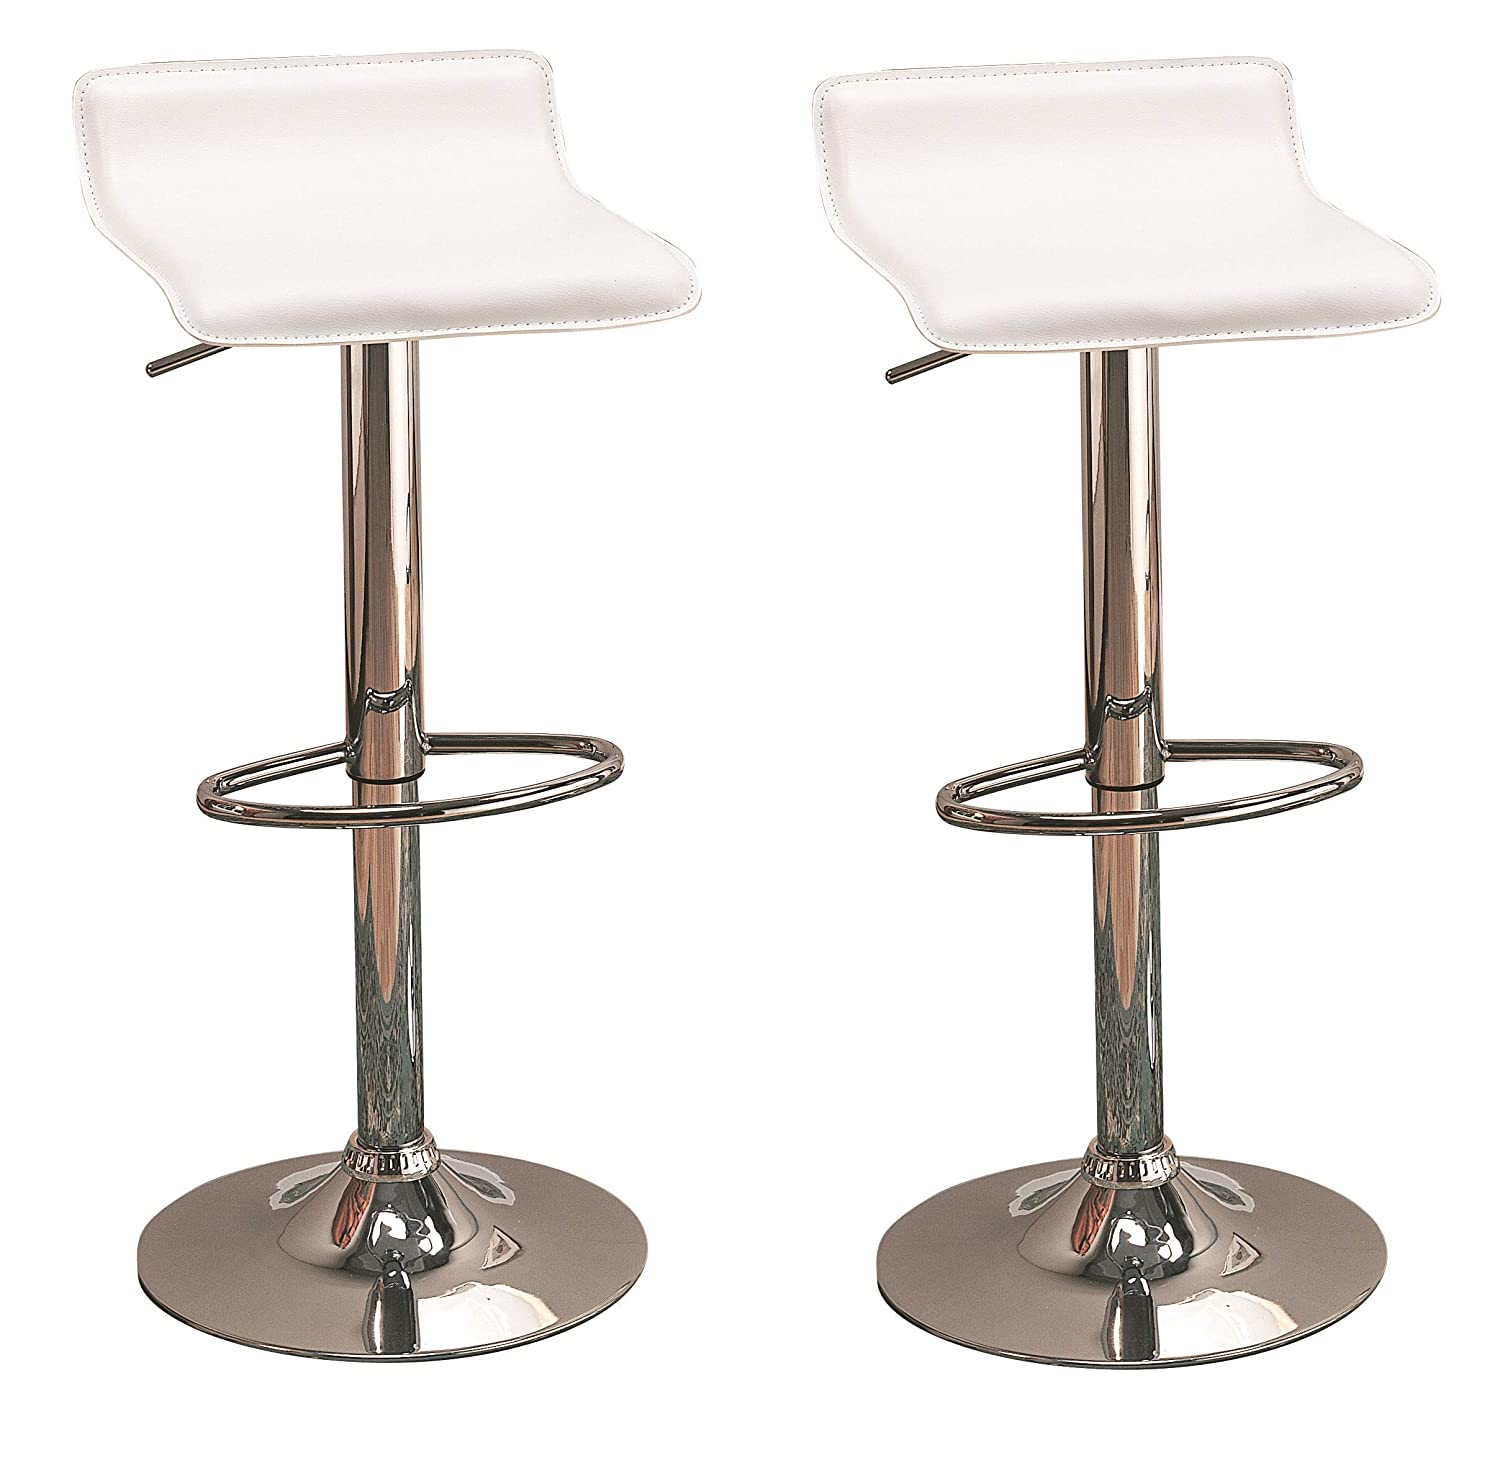 Excellent 29 Upholstered Backless Bar Stools With Adjustable Height White And Chrome Set Of 2 Gmtry Best Dining Table And Chair Ideas Images Gmtryco